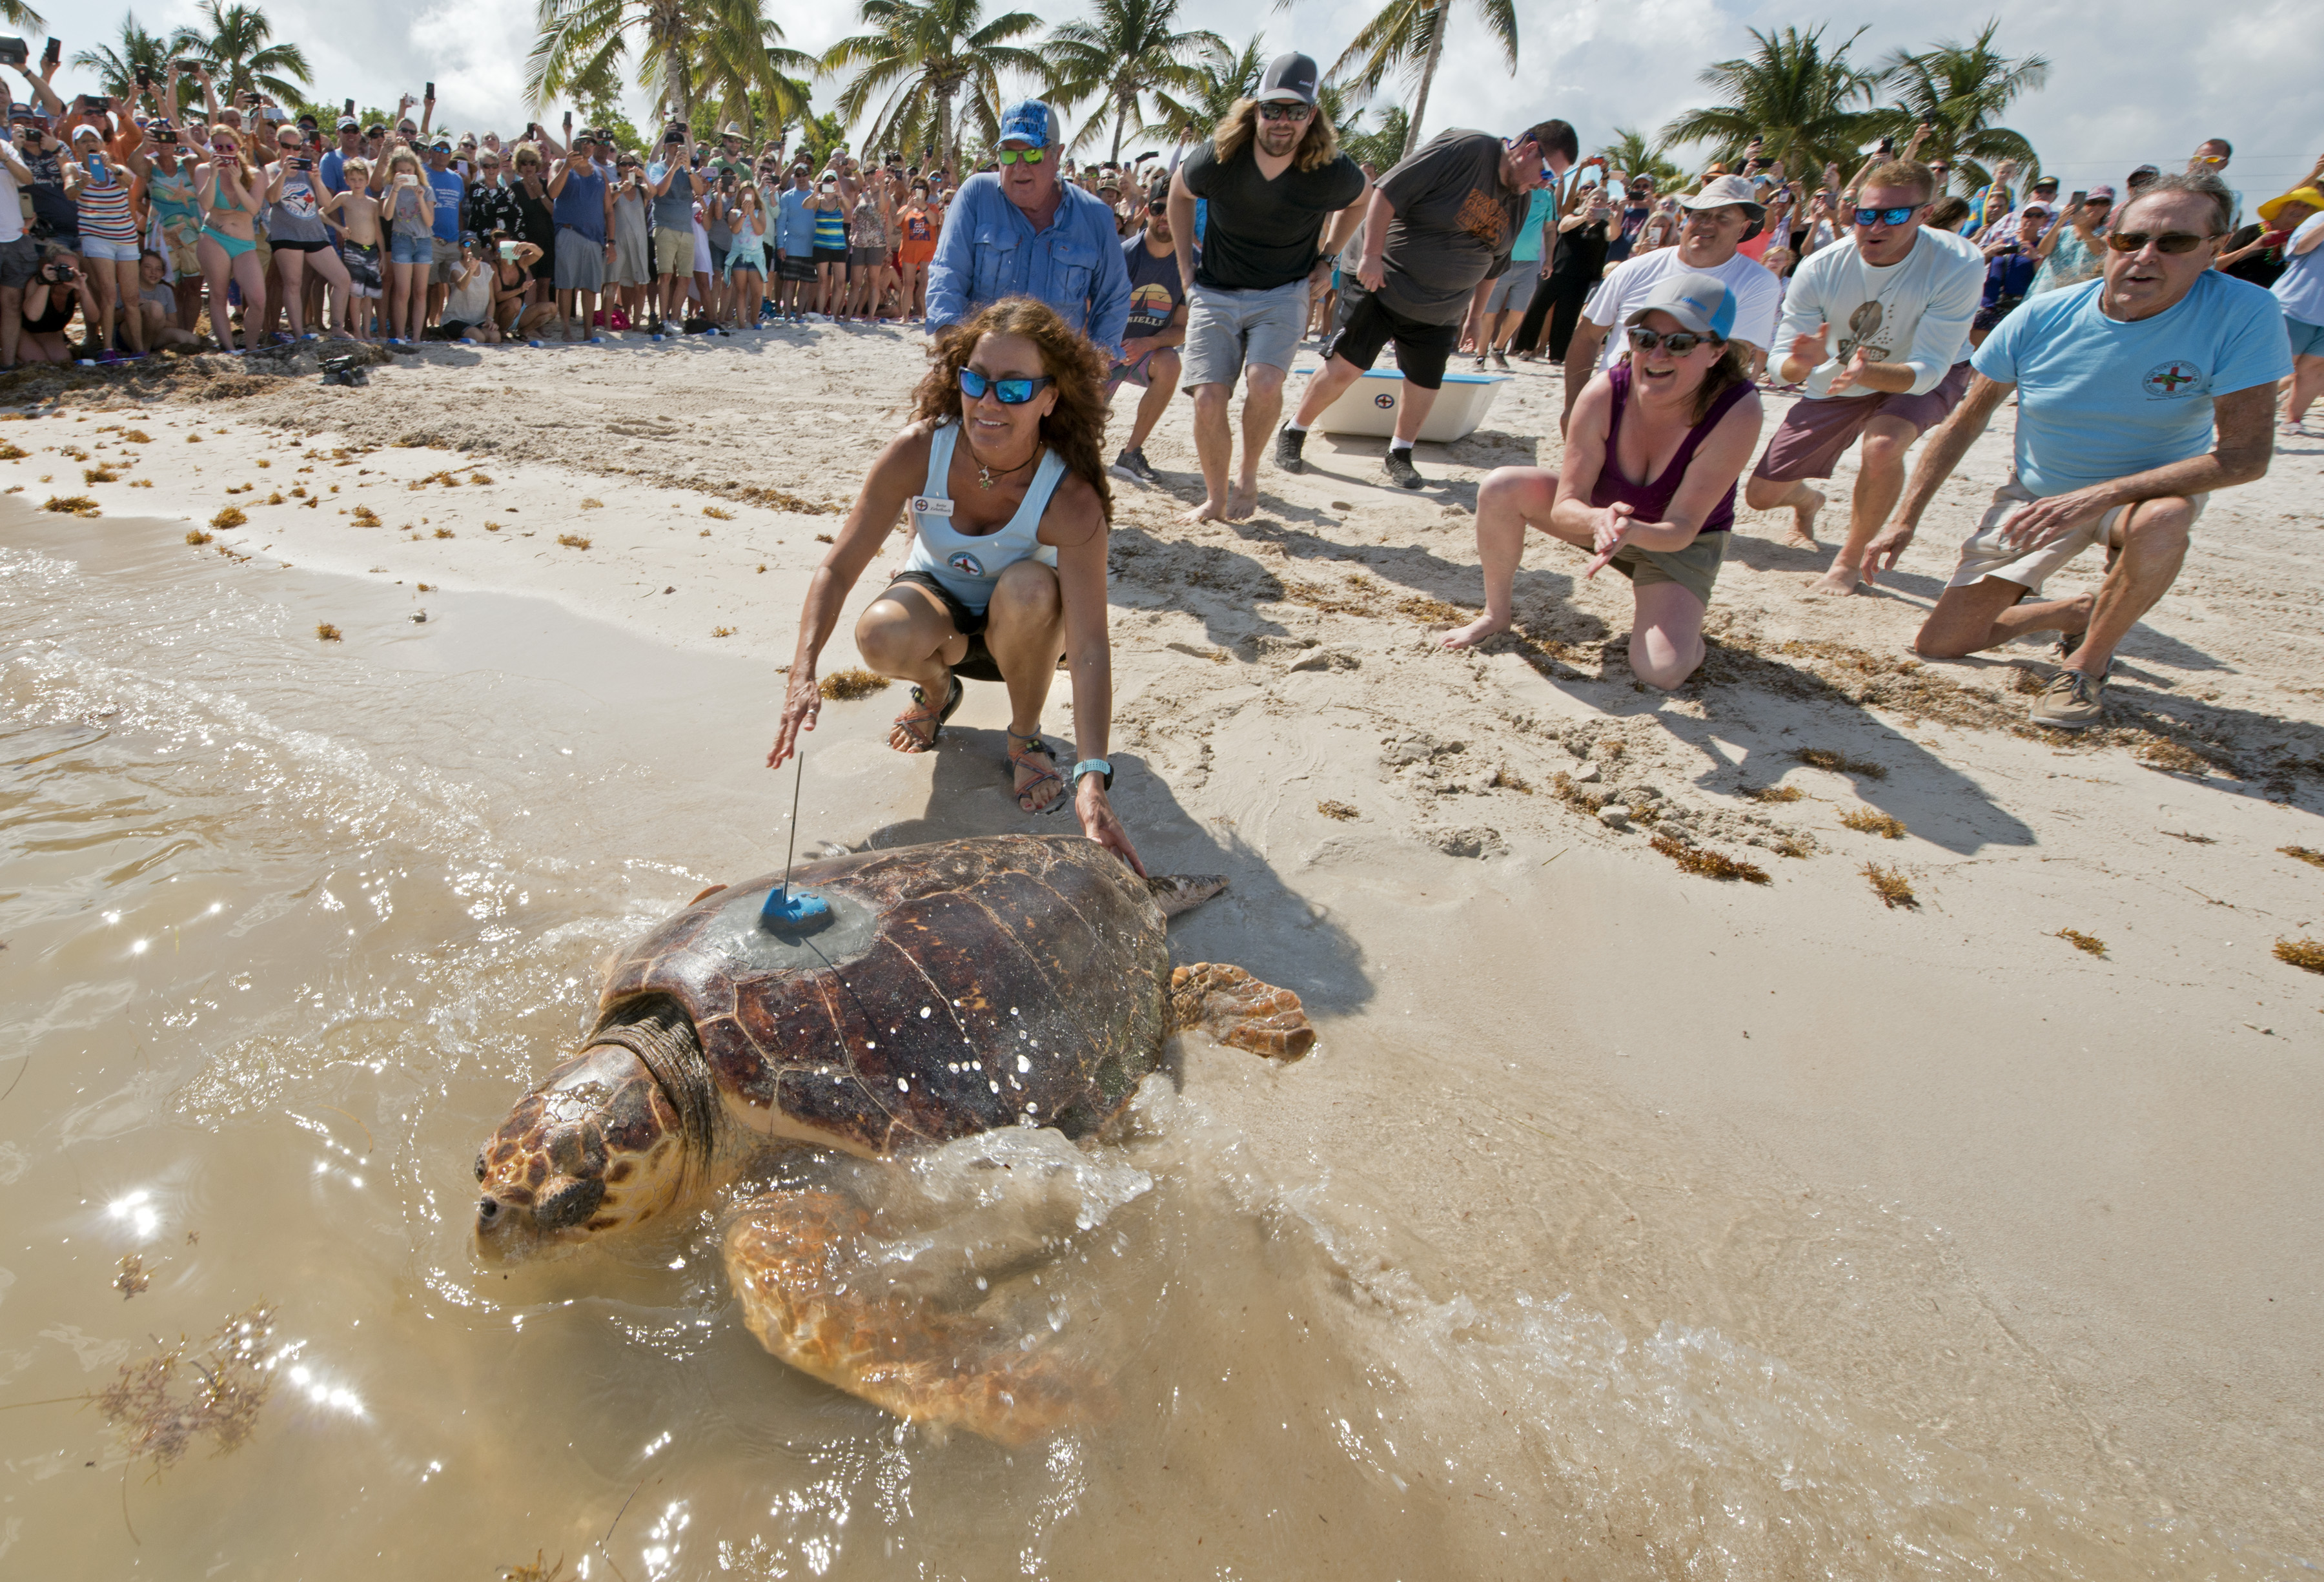 Mr. T released in the Florida Keys